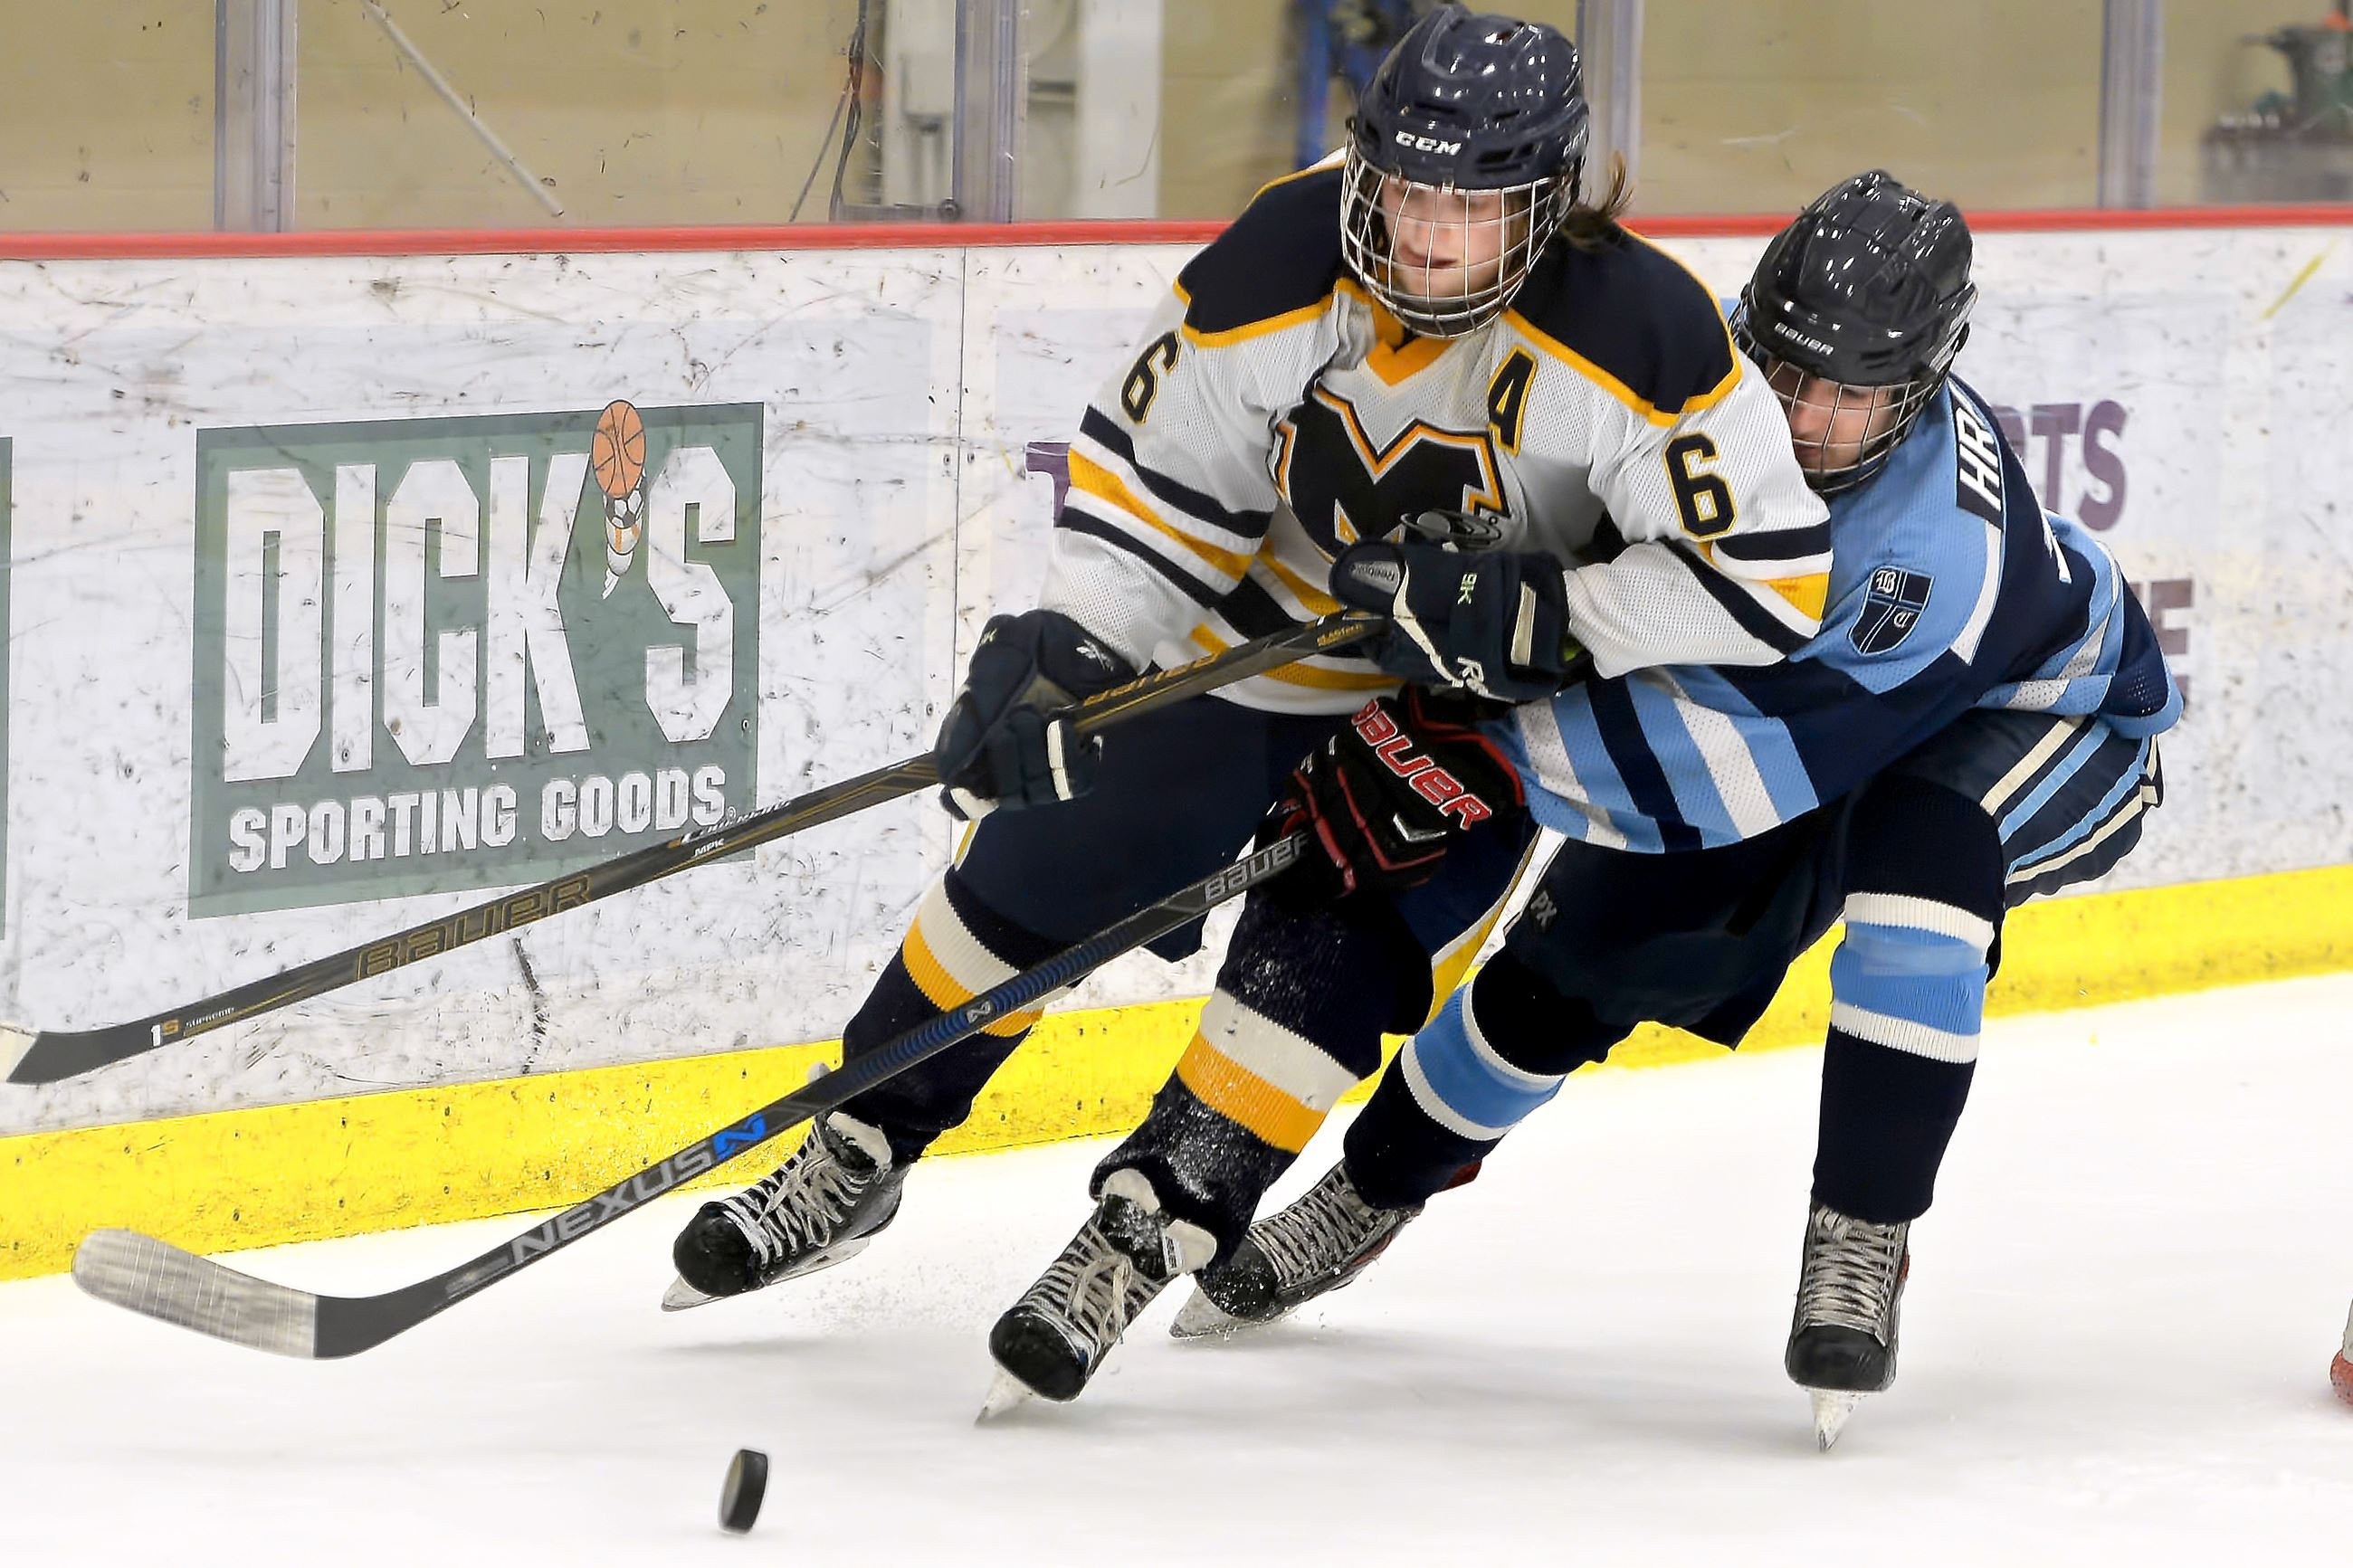 PA H.S.: High School Hockey Growing Despite Challenges